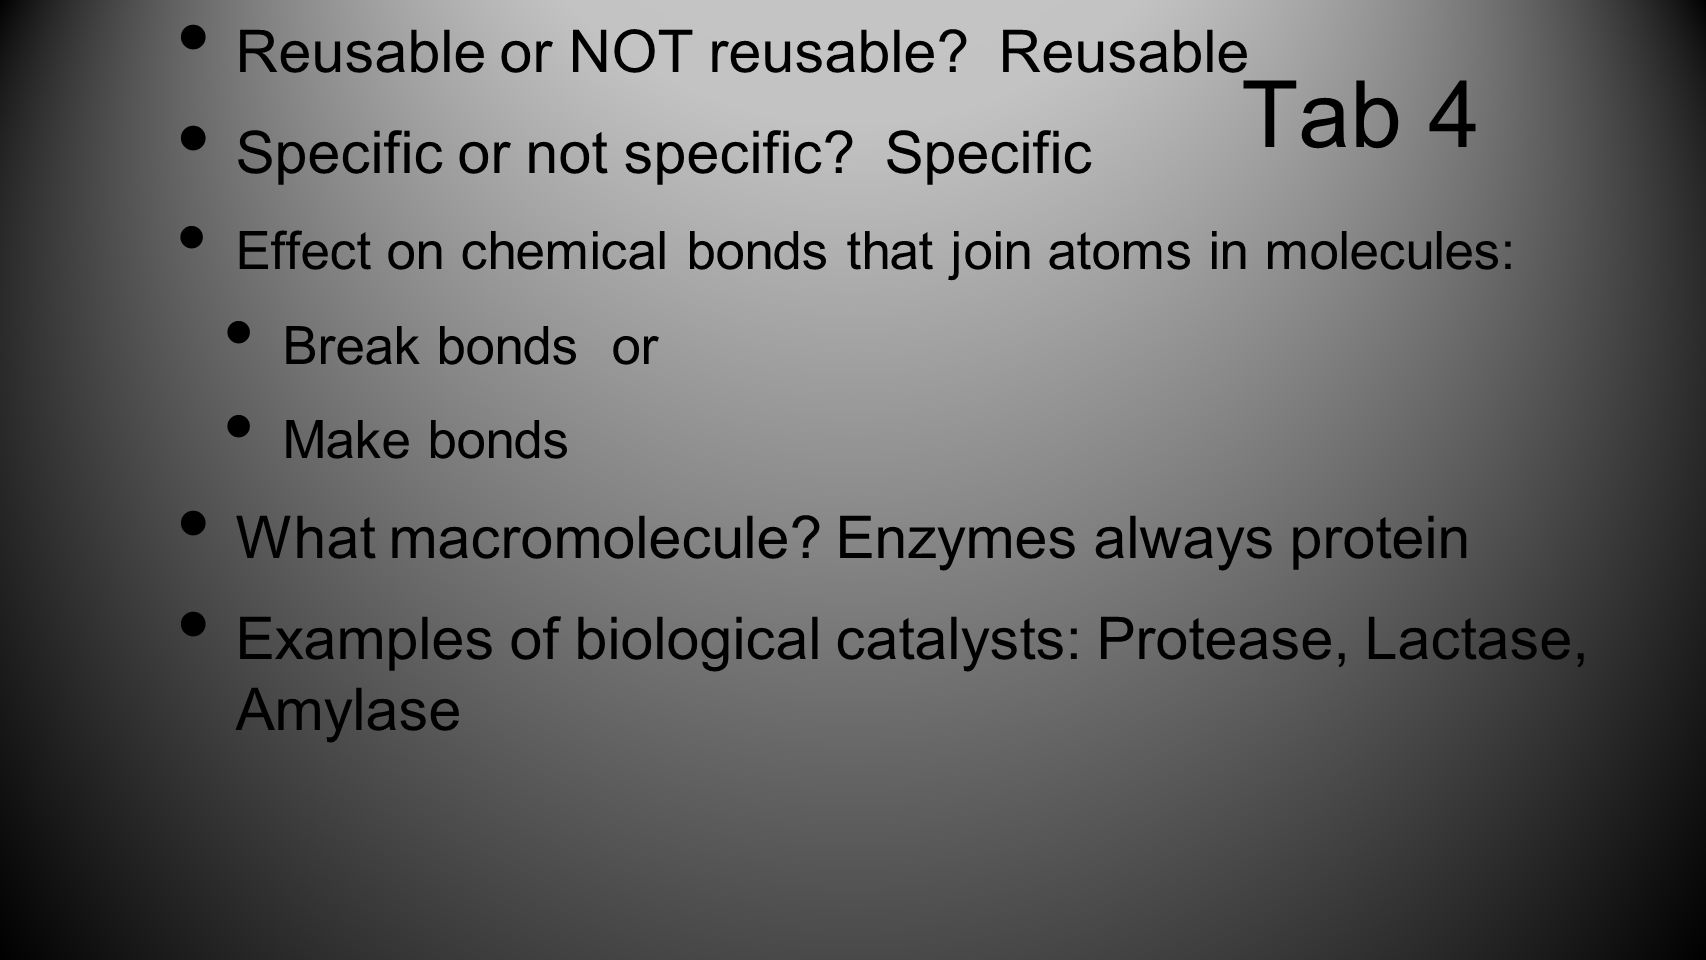 Tab 4 Reusable or NOT reusable? Reusable Specific or not specific? Specific Effect on chemical bonds that join atoms in molecules: Break bonds or Make